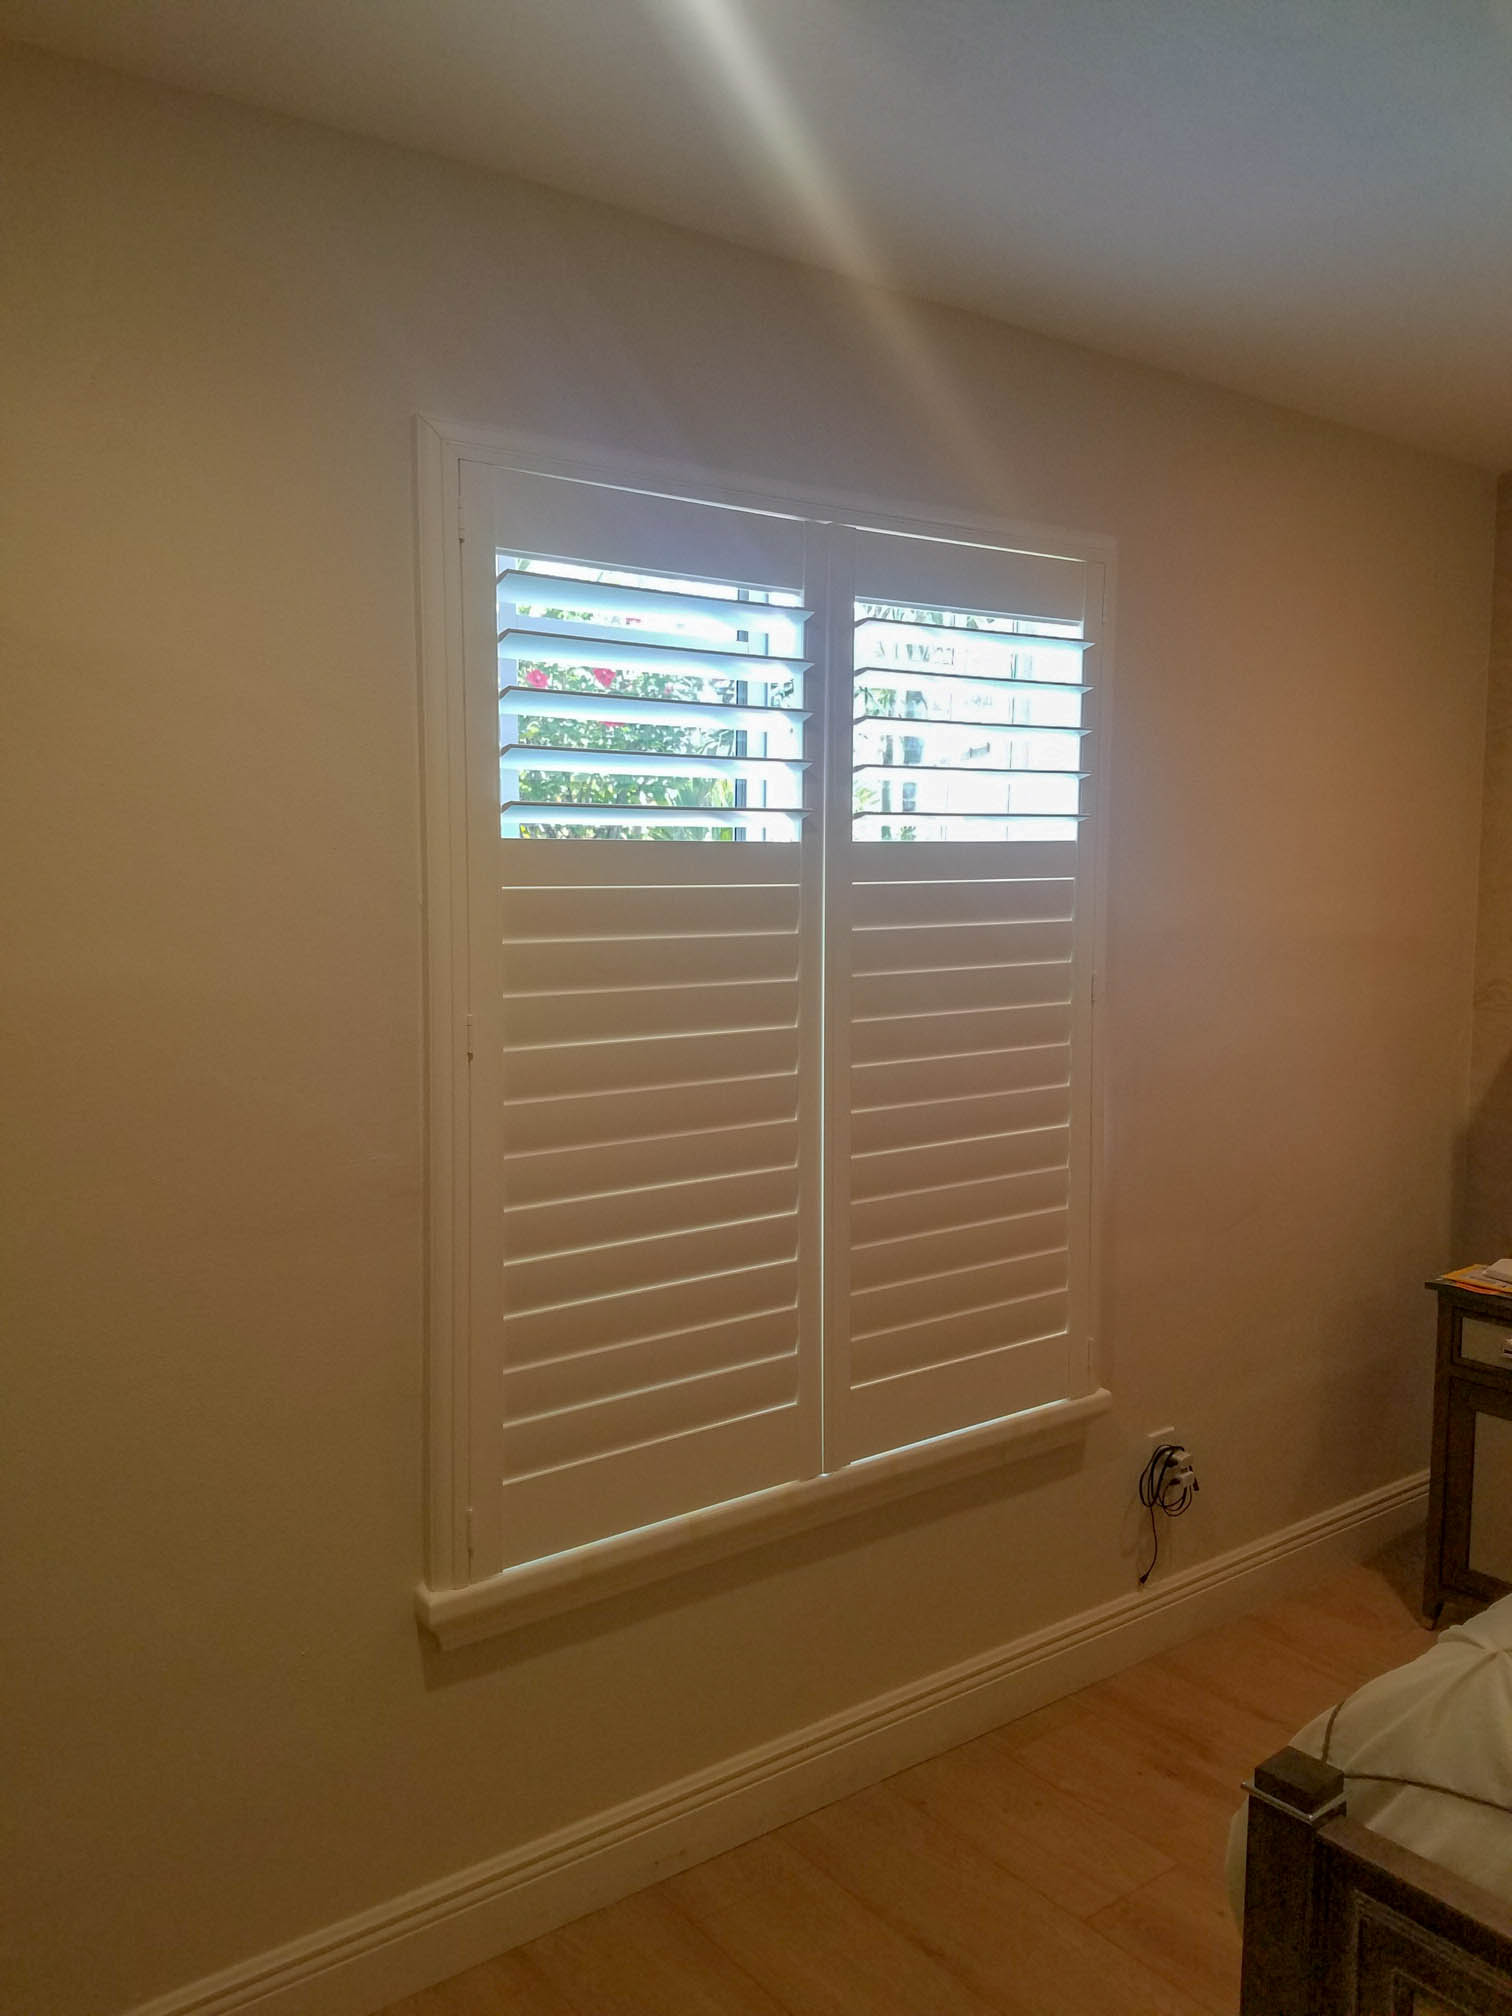 plantation shutters gallery PLANTATION SHUTTERS GALLERY 20180322 114048